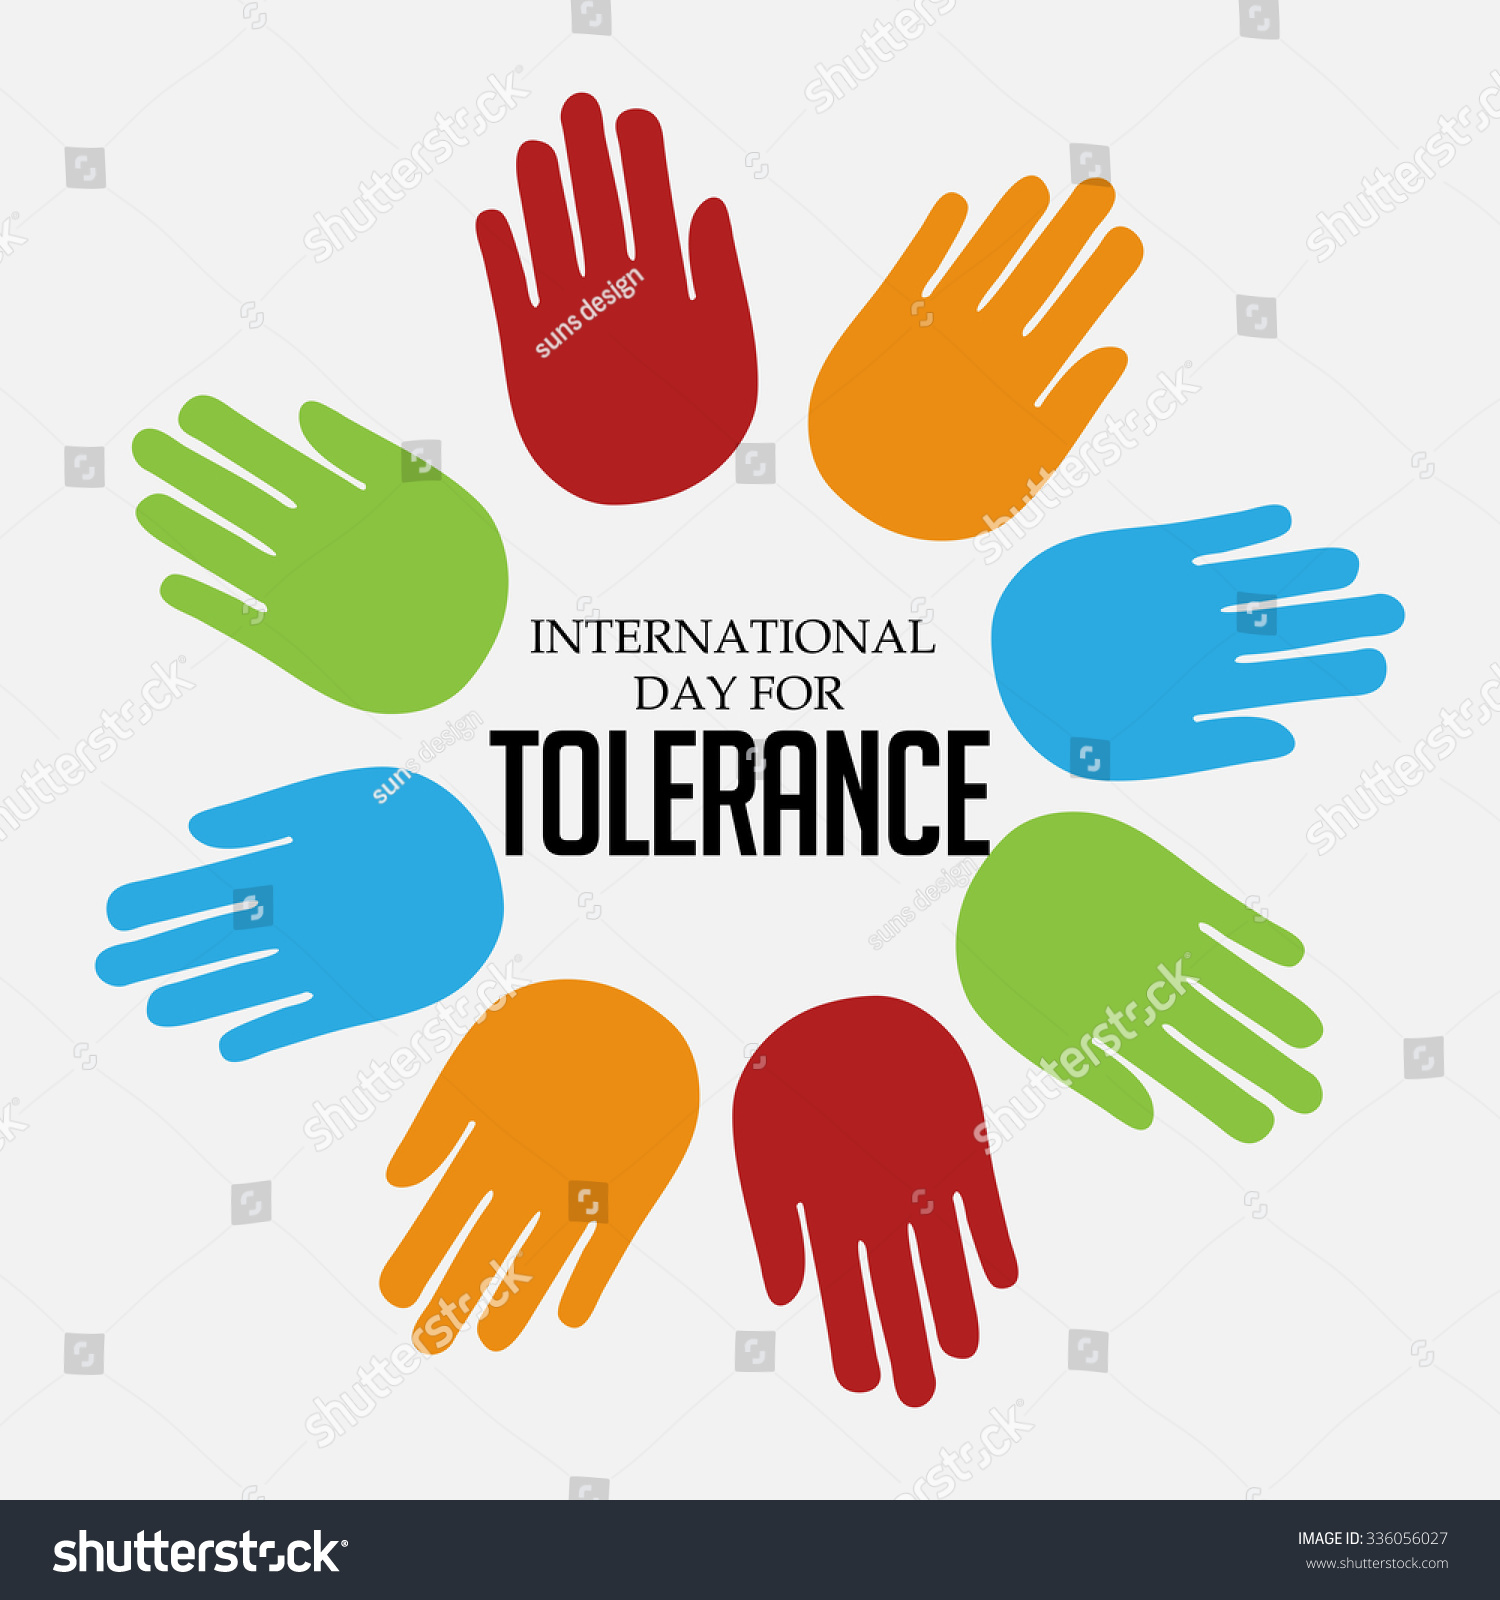 Vector illustration international day tolerance stock vector vector illustration of international day for tolerance biocorpaavc Image collections